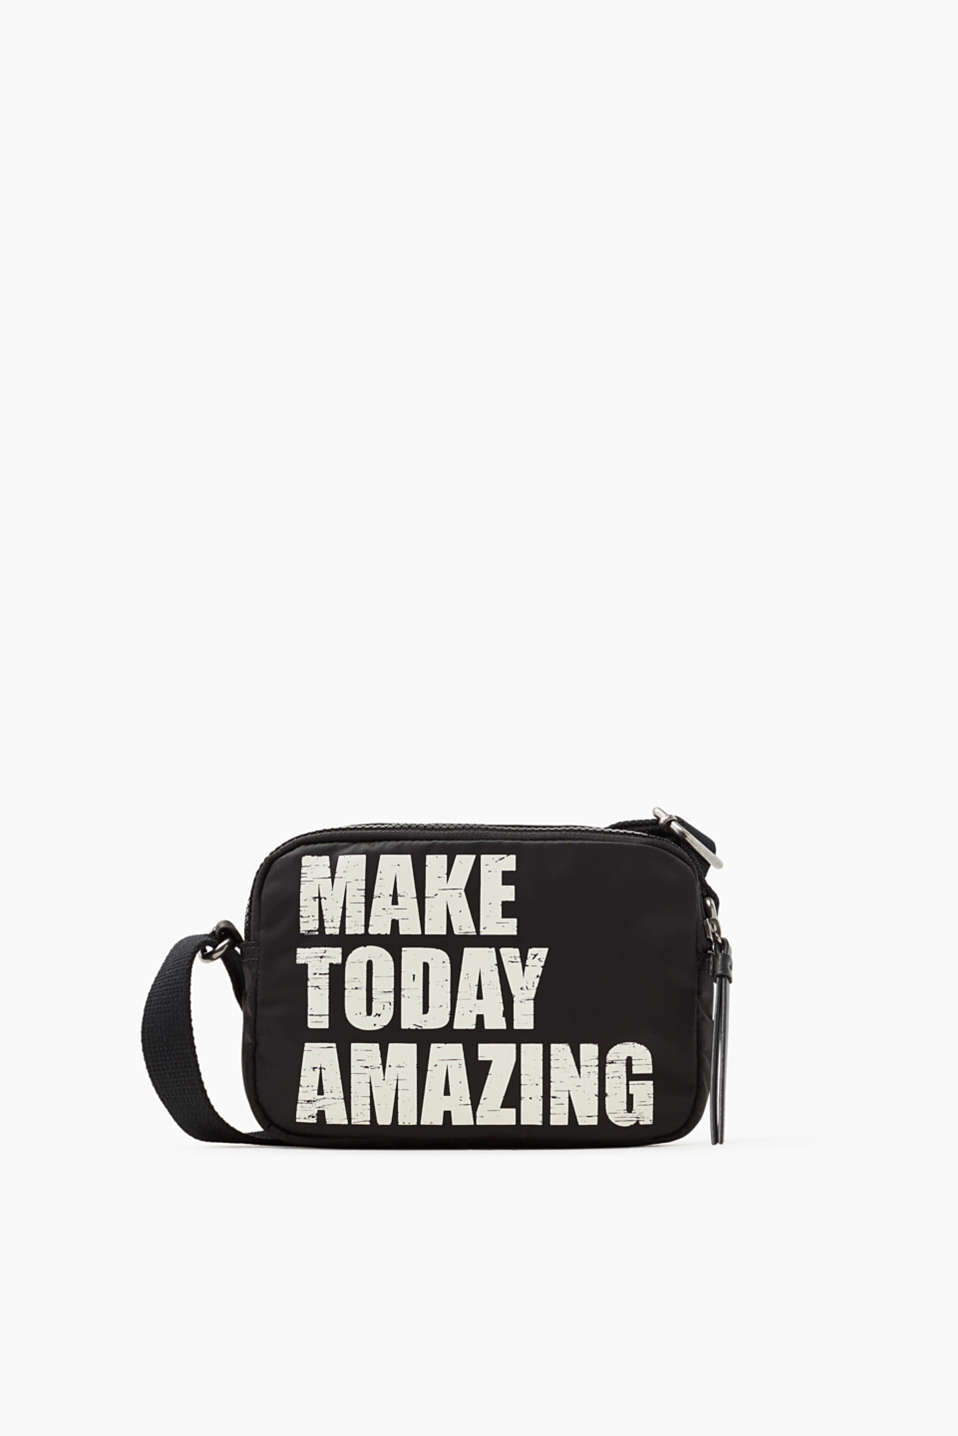 Make today amazing! This small shoulder bag impresses with its lightweight nylon and cool statement.